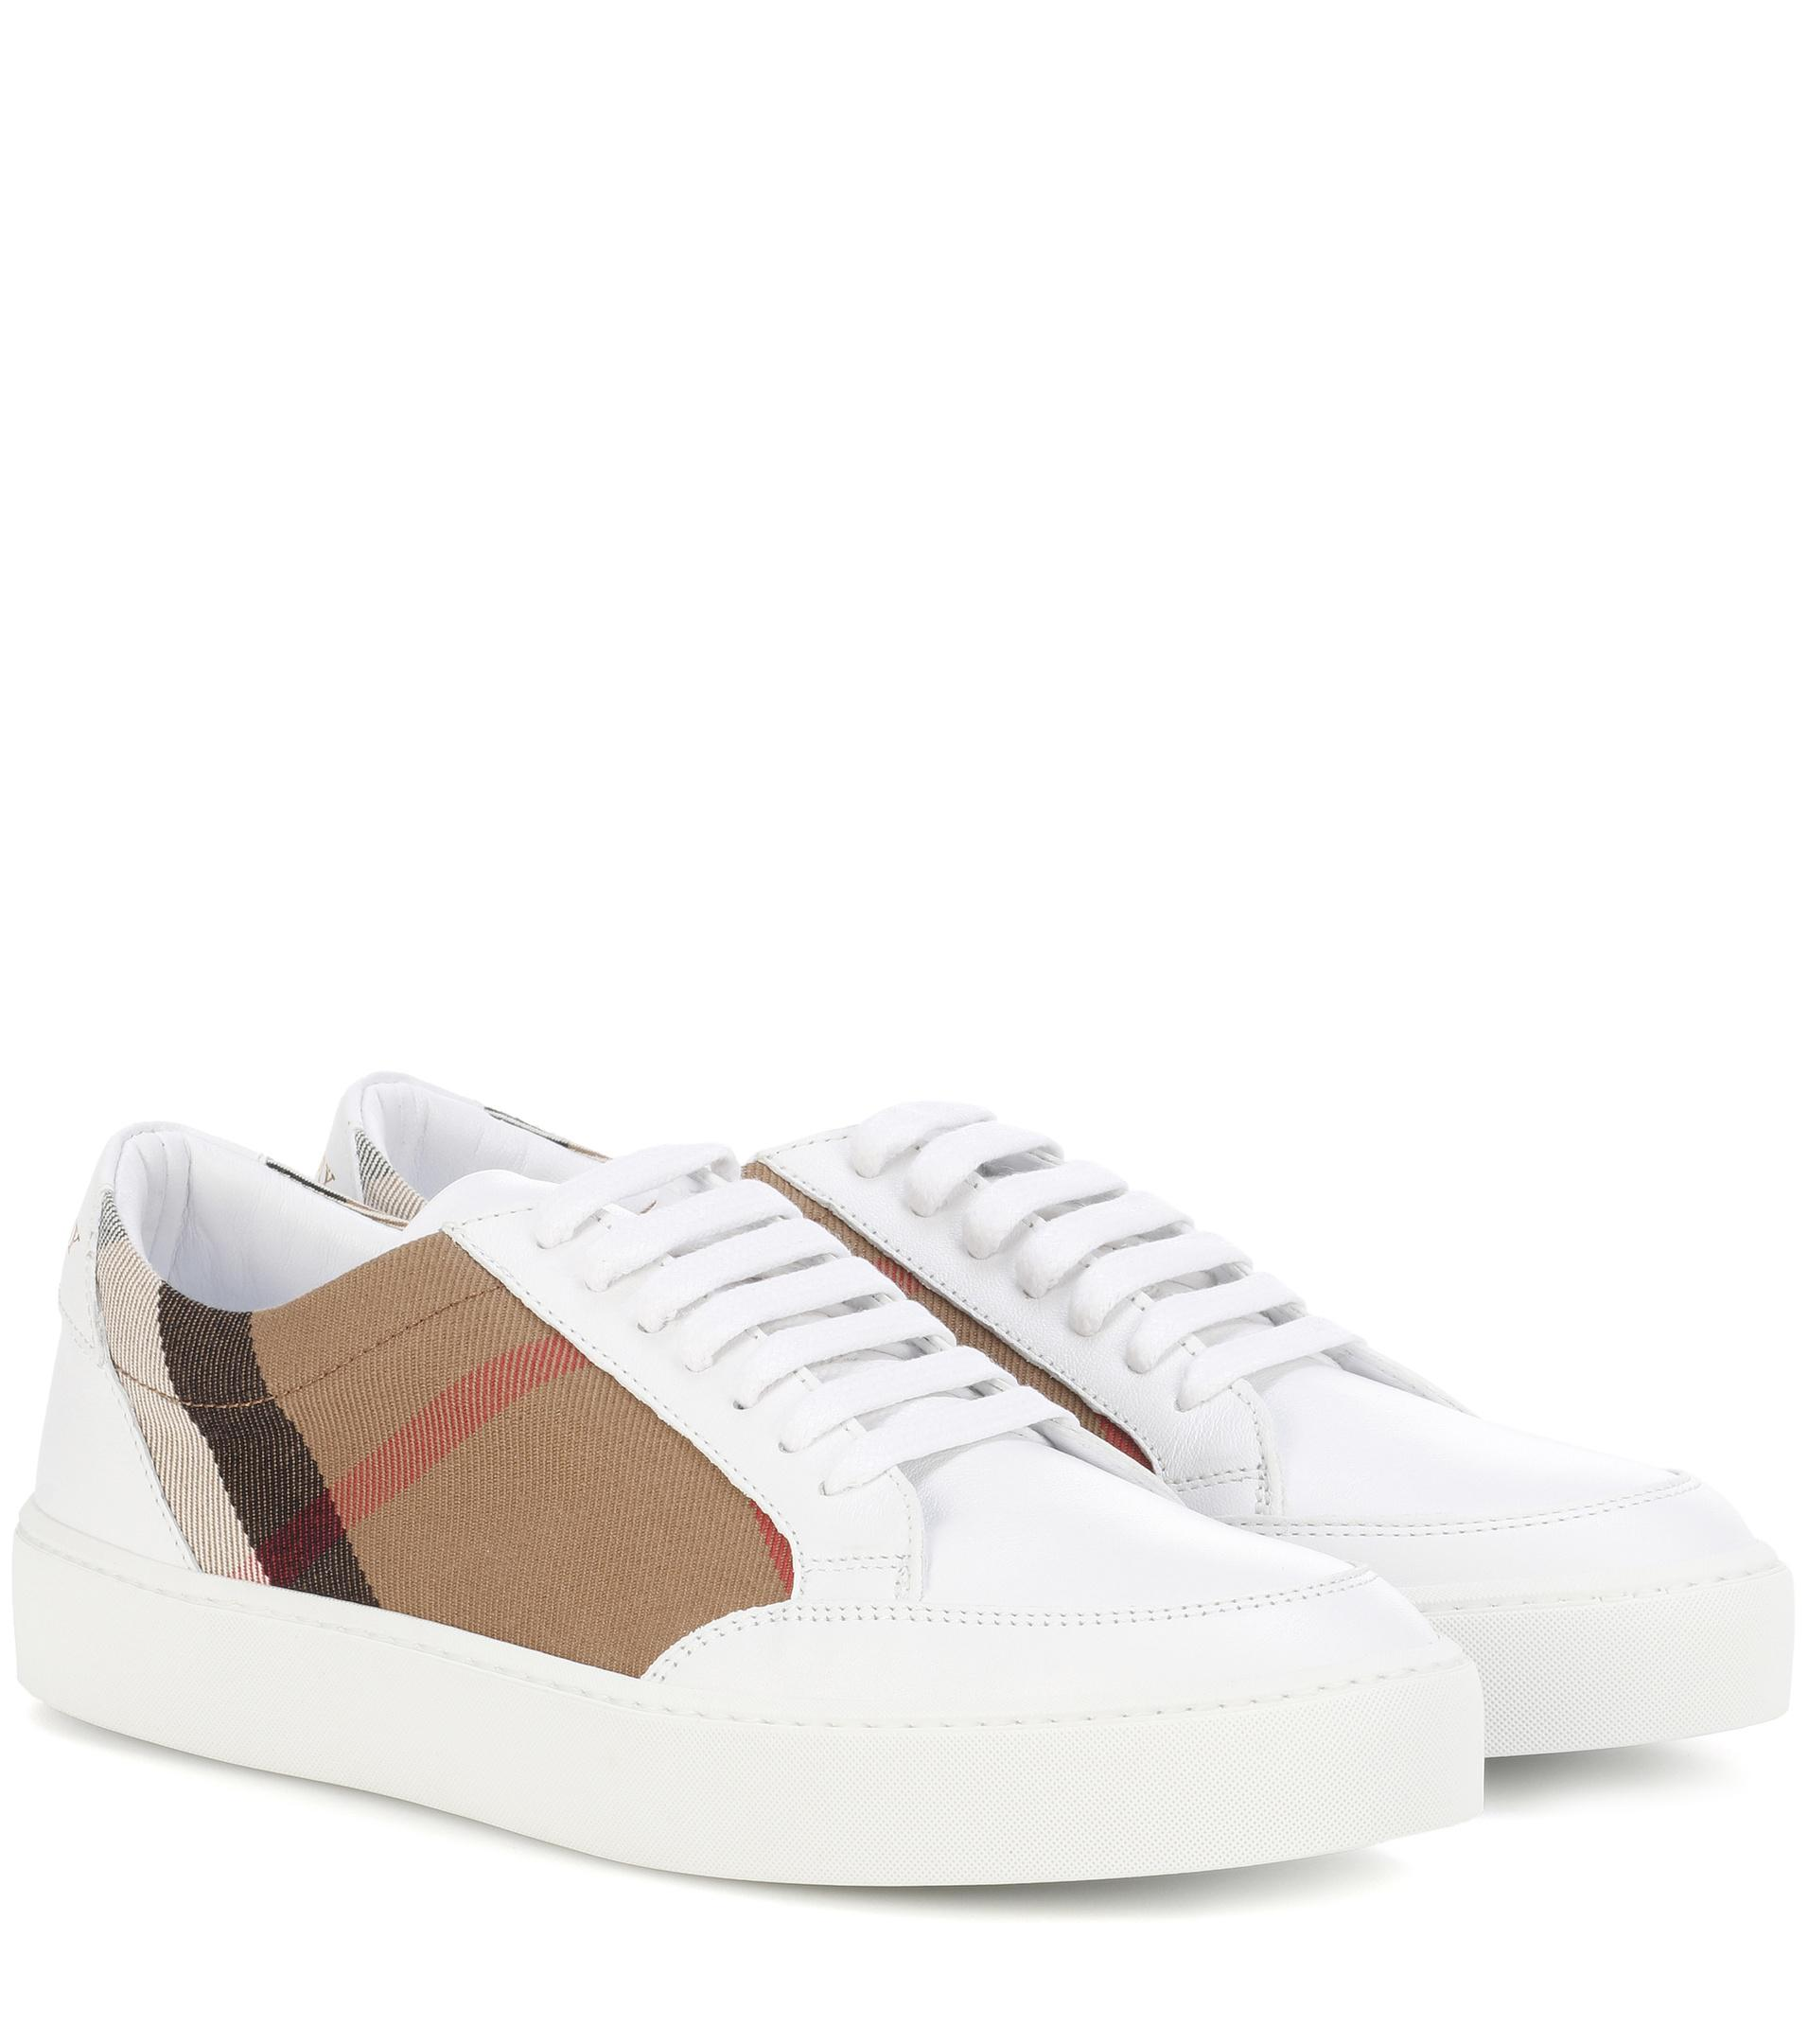 Burberry Leather Salmond Sneakers Free Shipping Order Newest Many Kinds Of bXEOQ